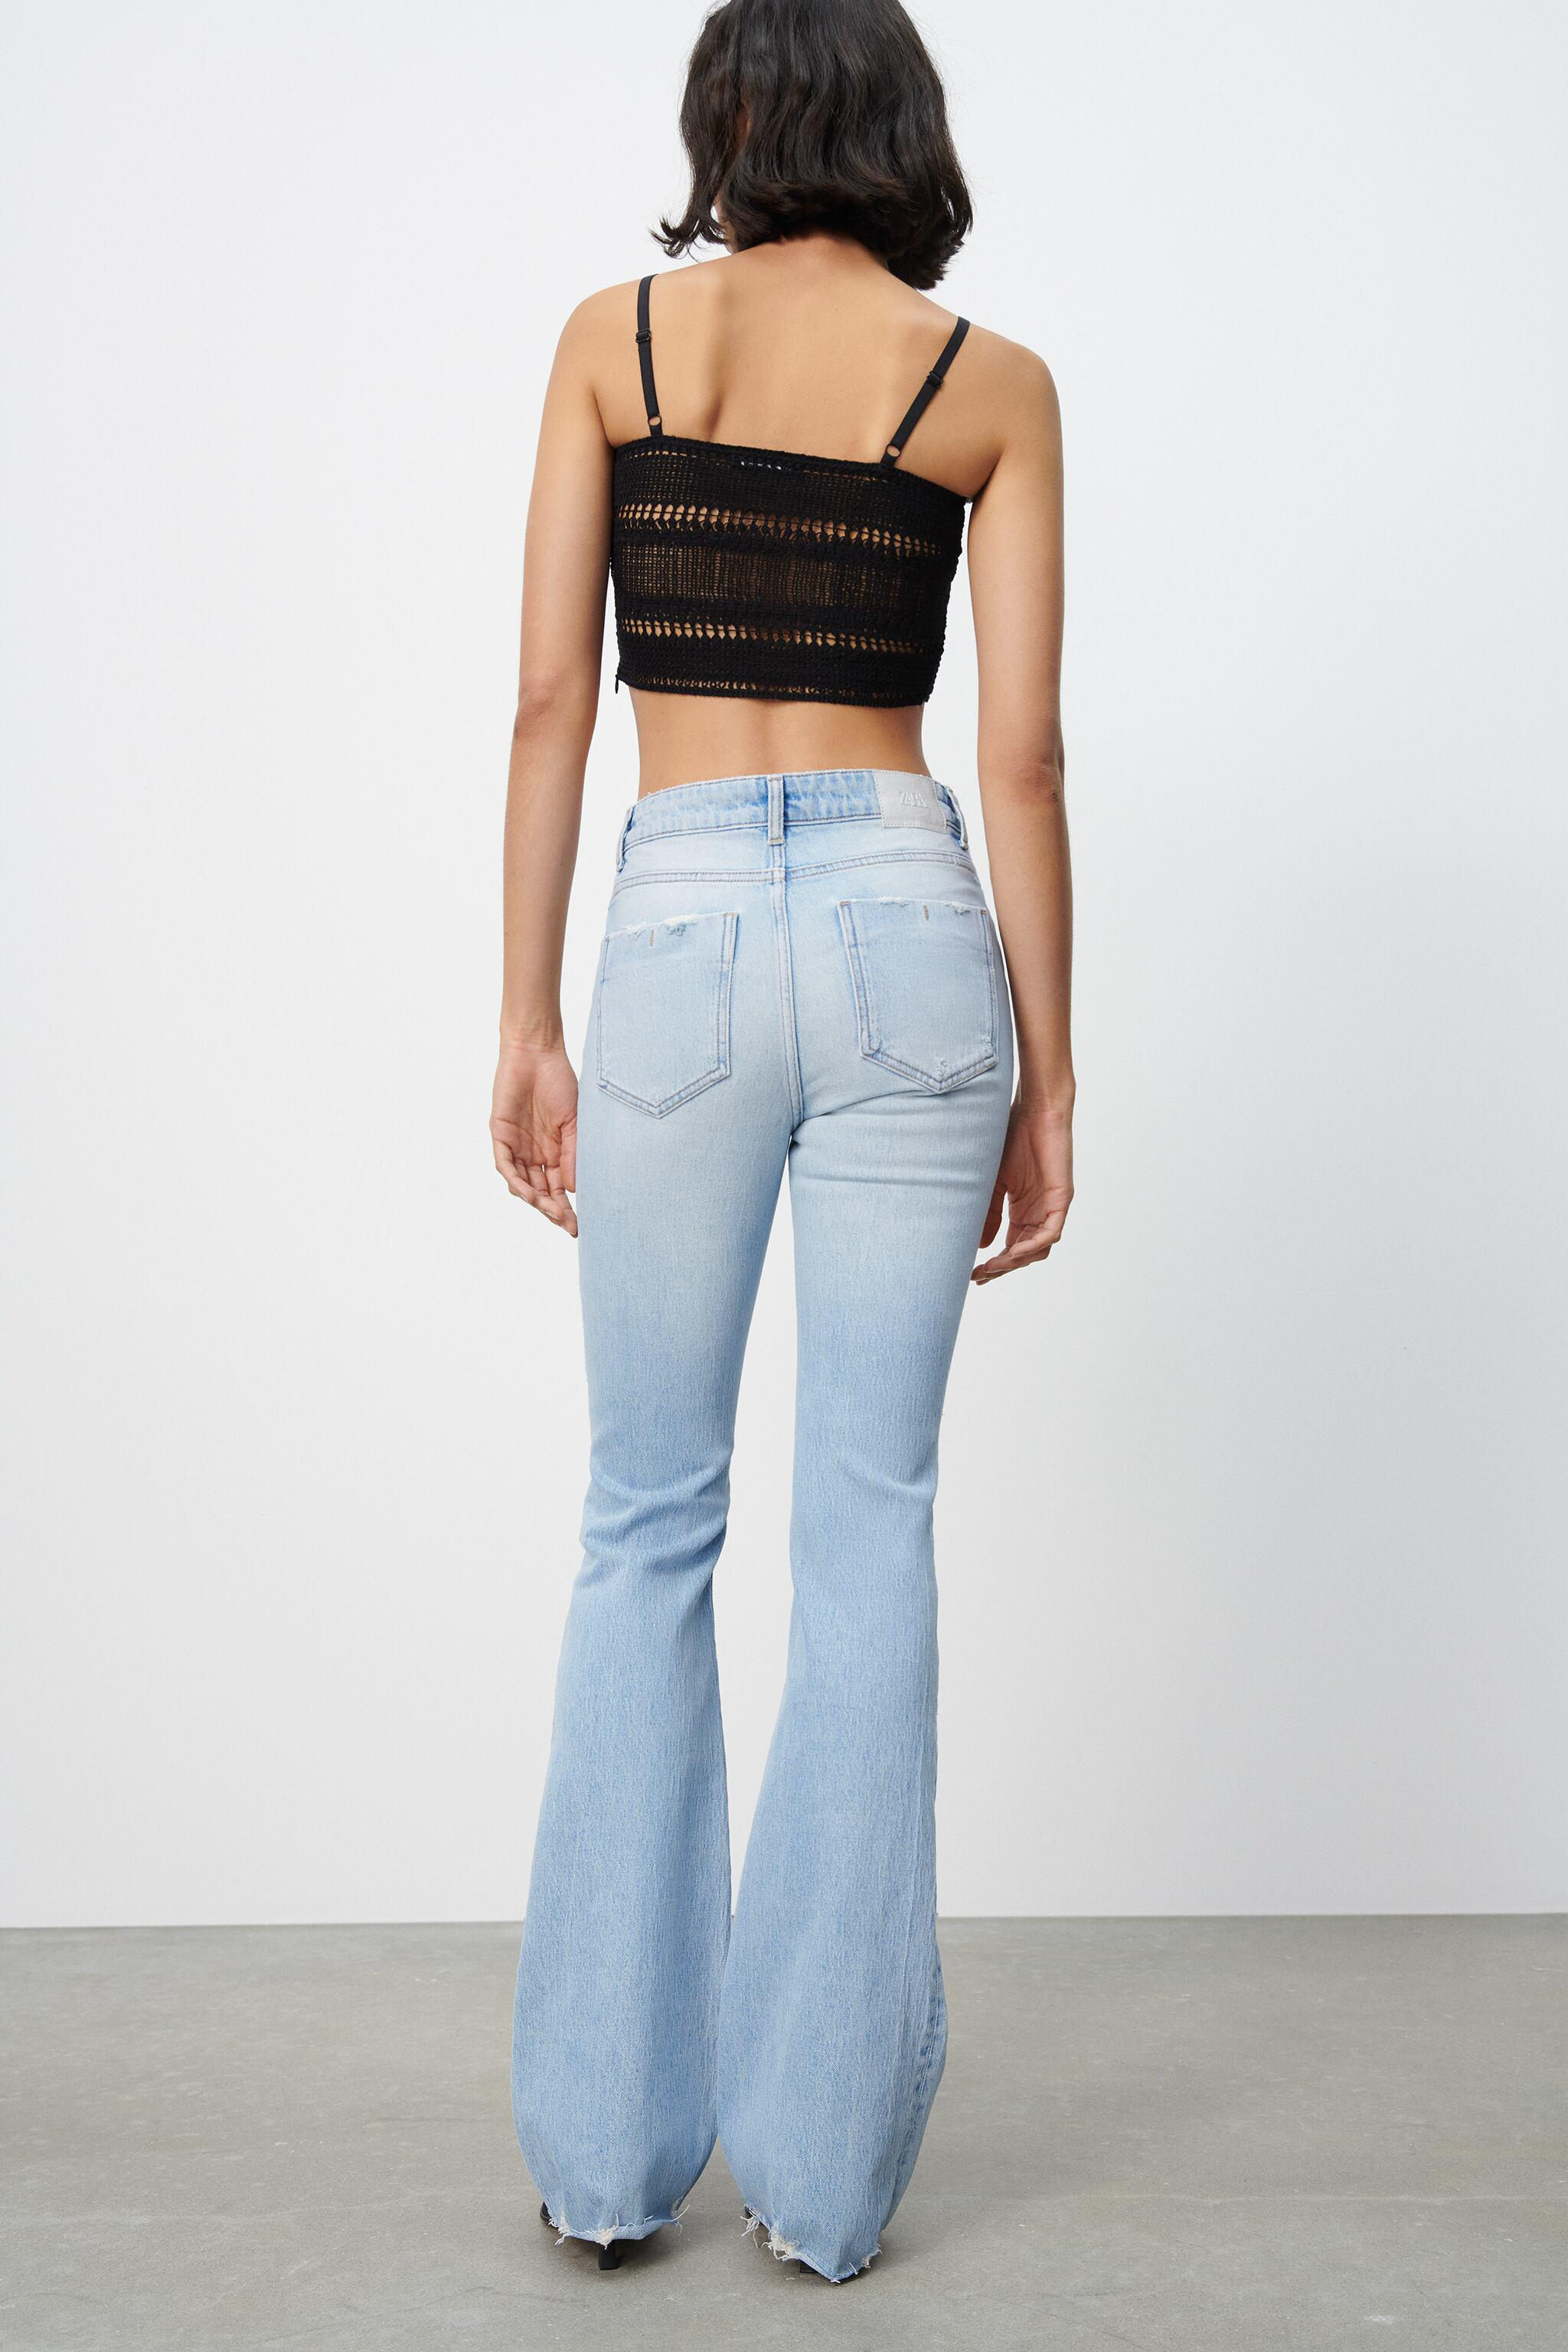 Z1975 RIPPED FLARE JEANS 5